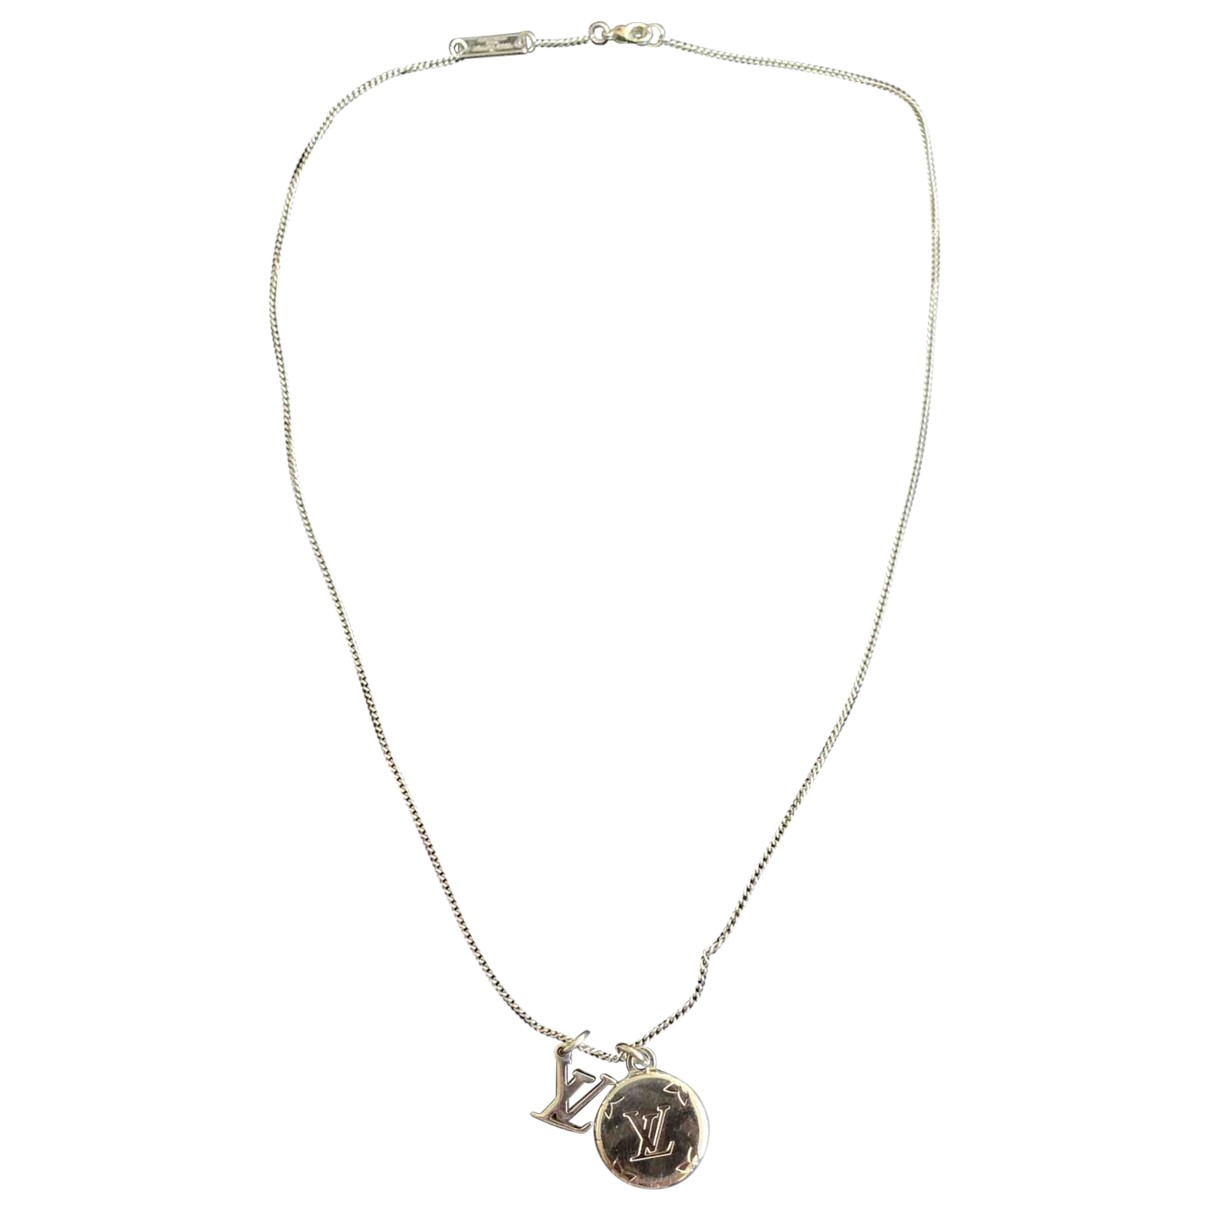 Louis Vuitton \N Silver Metal necklace for Women \N